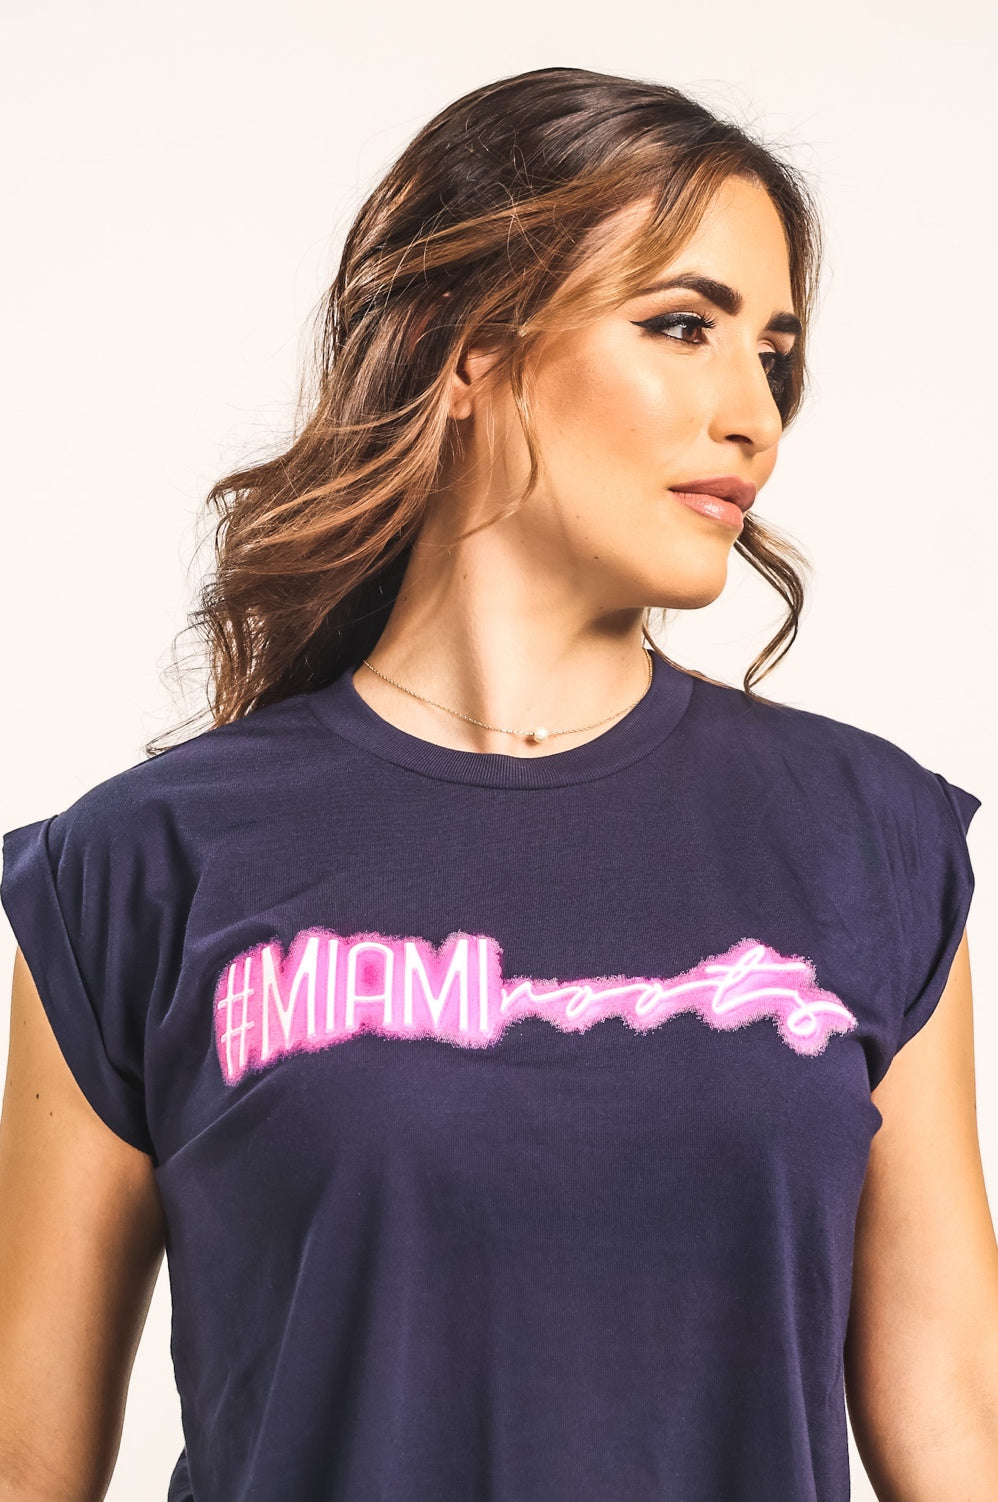 Roll Up Your Sleeves and Get Down to Biz - #MIAMIroots